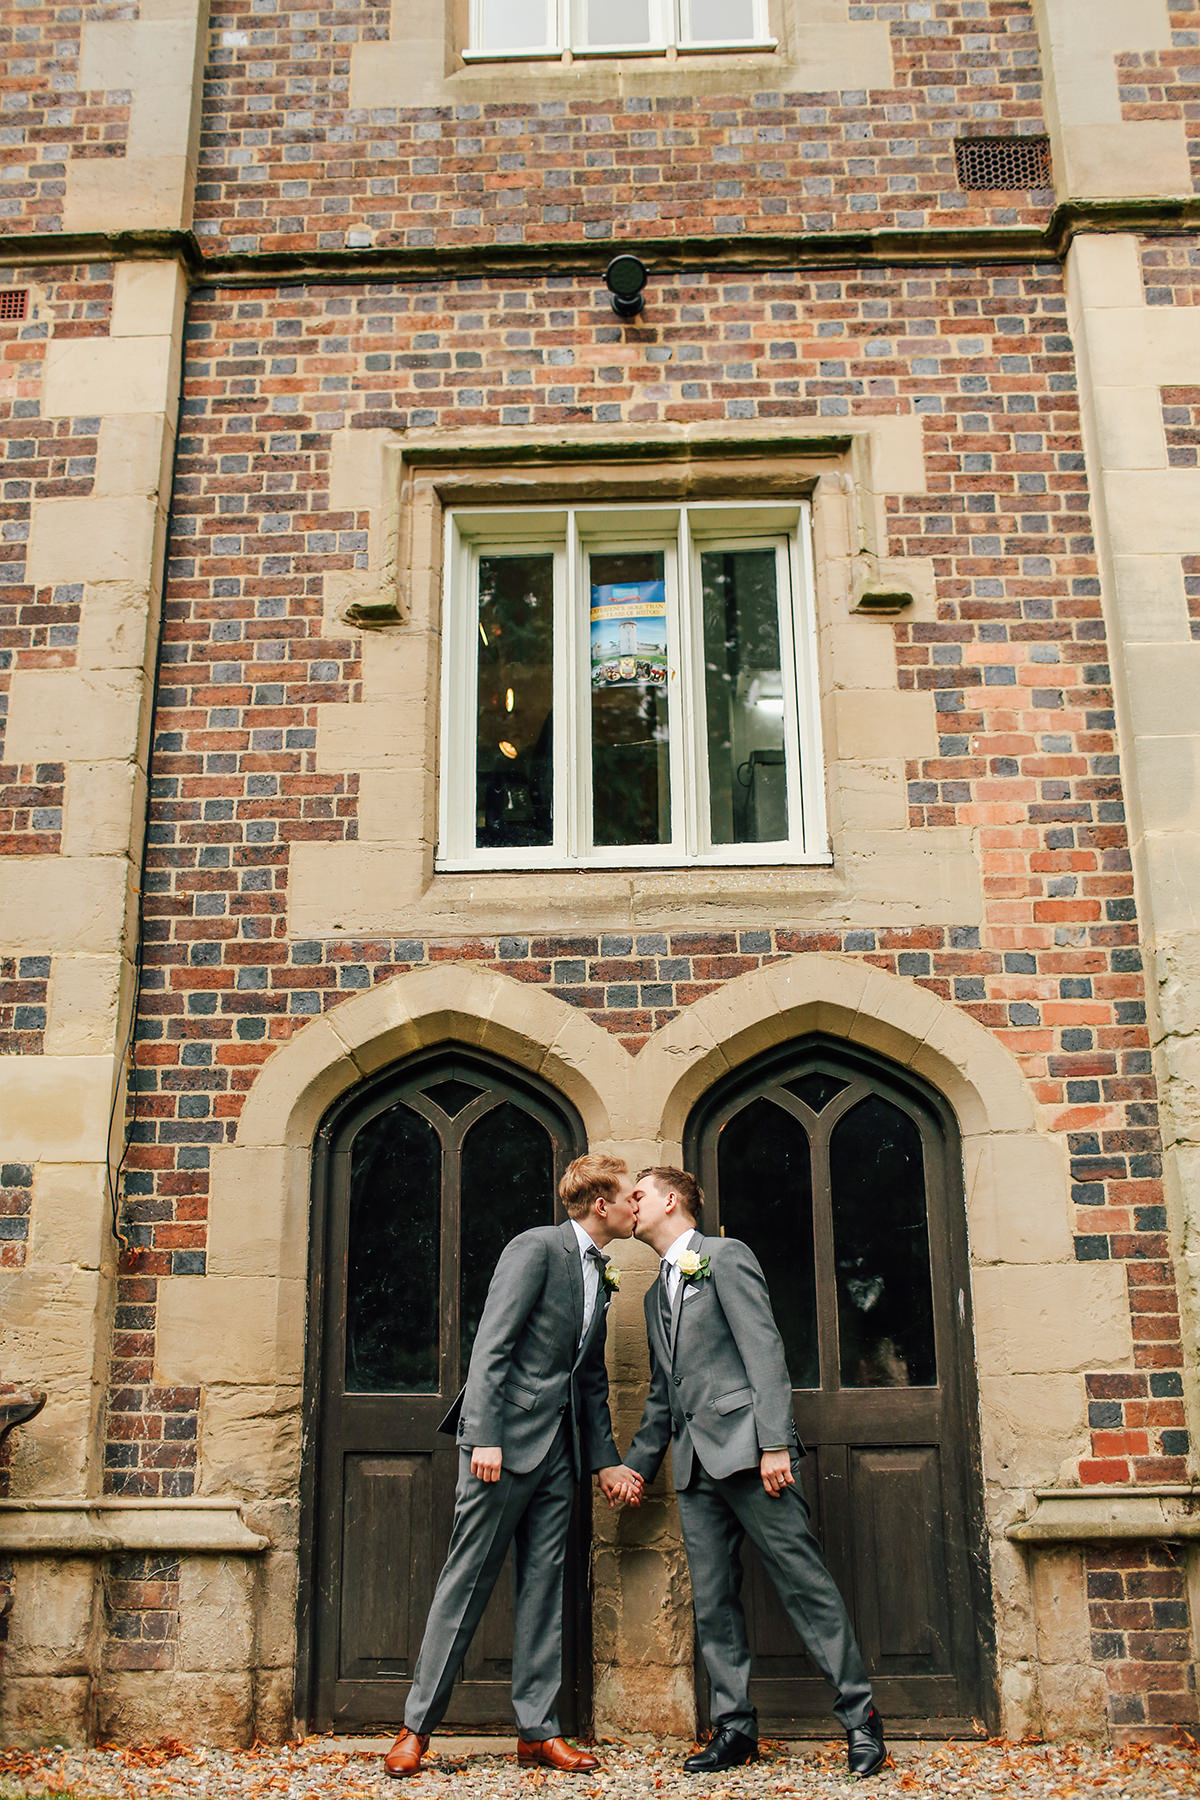 Creative and Alternative Photography Gay Wedding Photography Manchester Wedding Photographer Leamington Spa Wedding Photography Civil Partnership